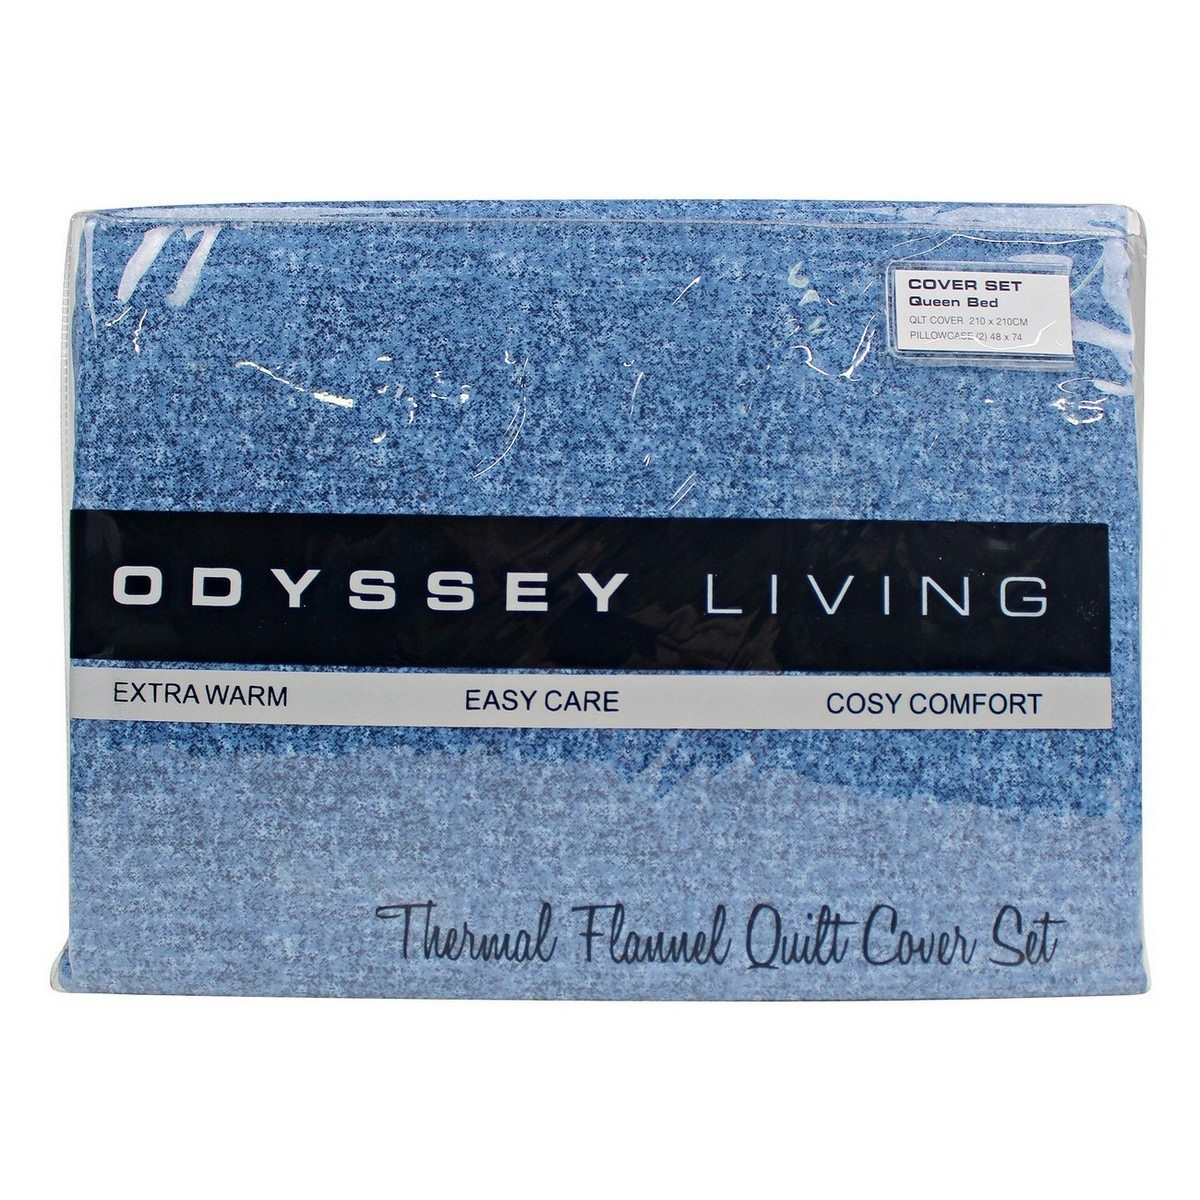 Odyssey Living Marle Thermal Flannel Quilt Cover Set, Queen, Denim